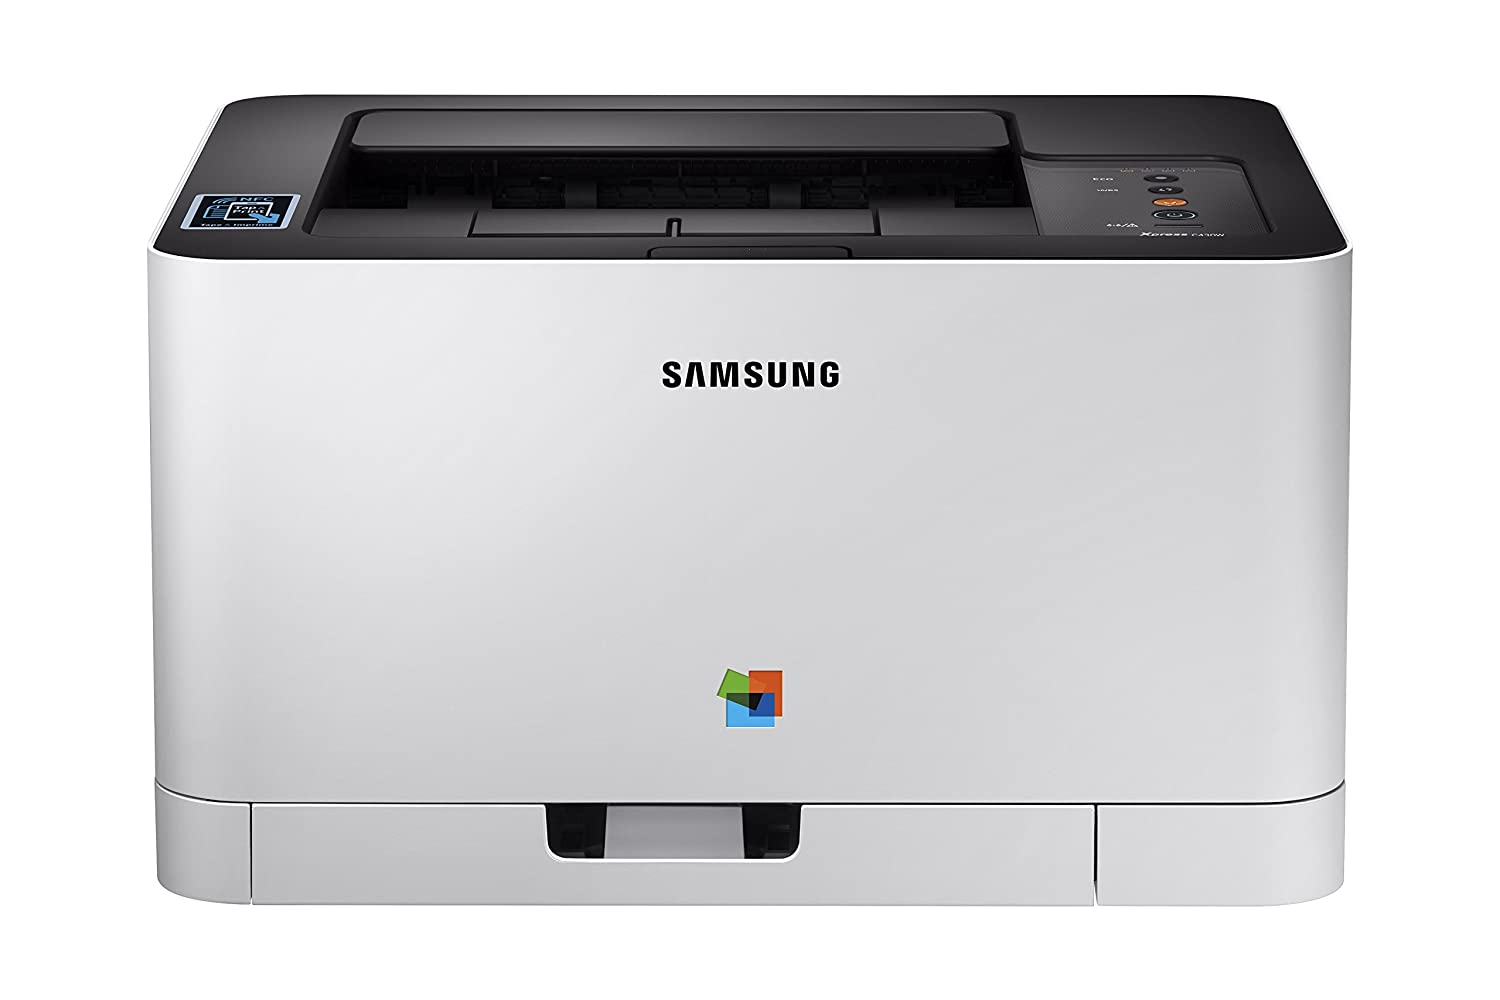 Samsung Xpress C430W Wireless Color Laser Printer with Simple NFC + WiFi Connectivity and Built-in Ethernet,  Dash Replenishment Enabled (SS230G) hp